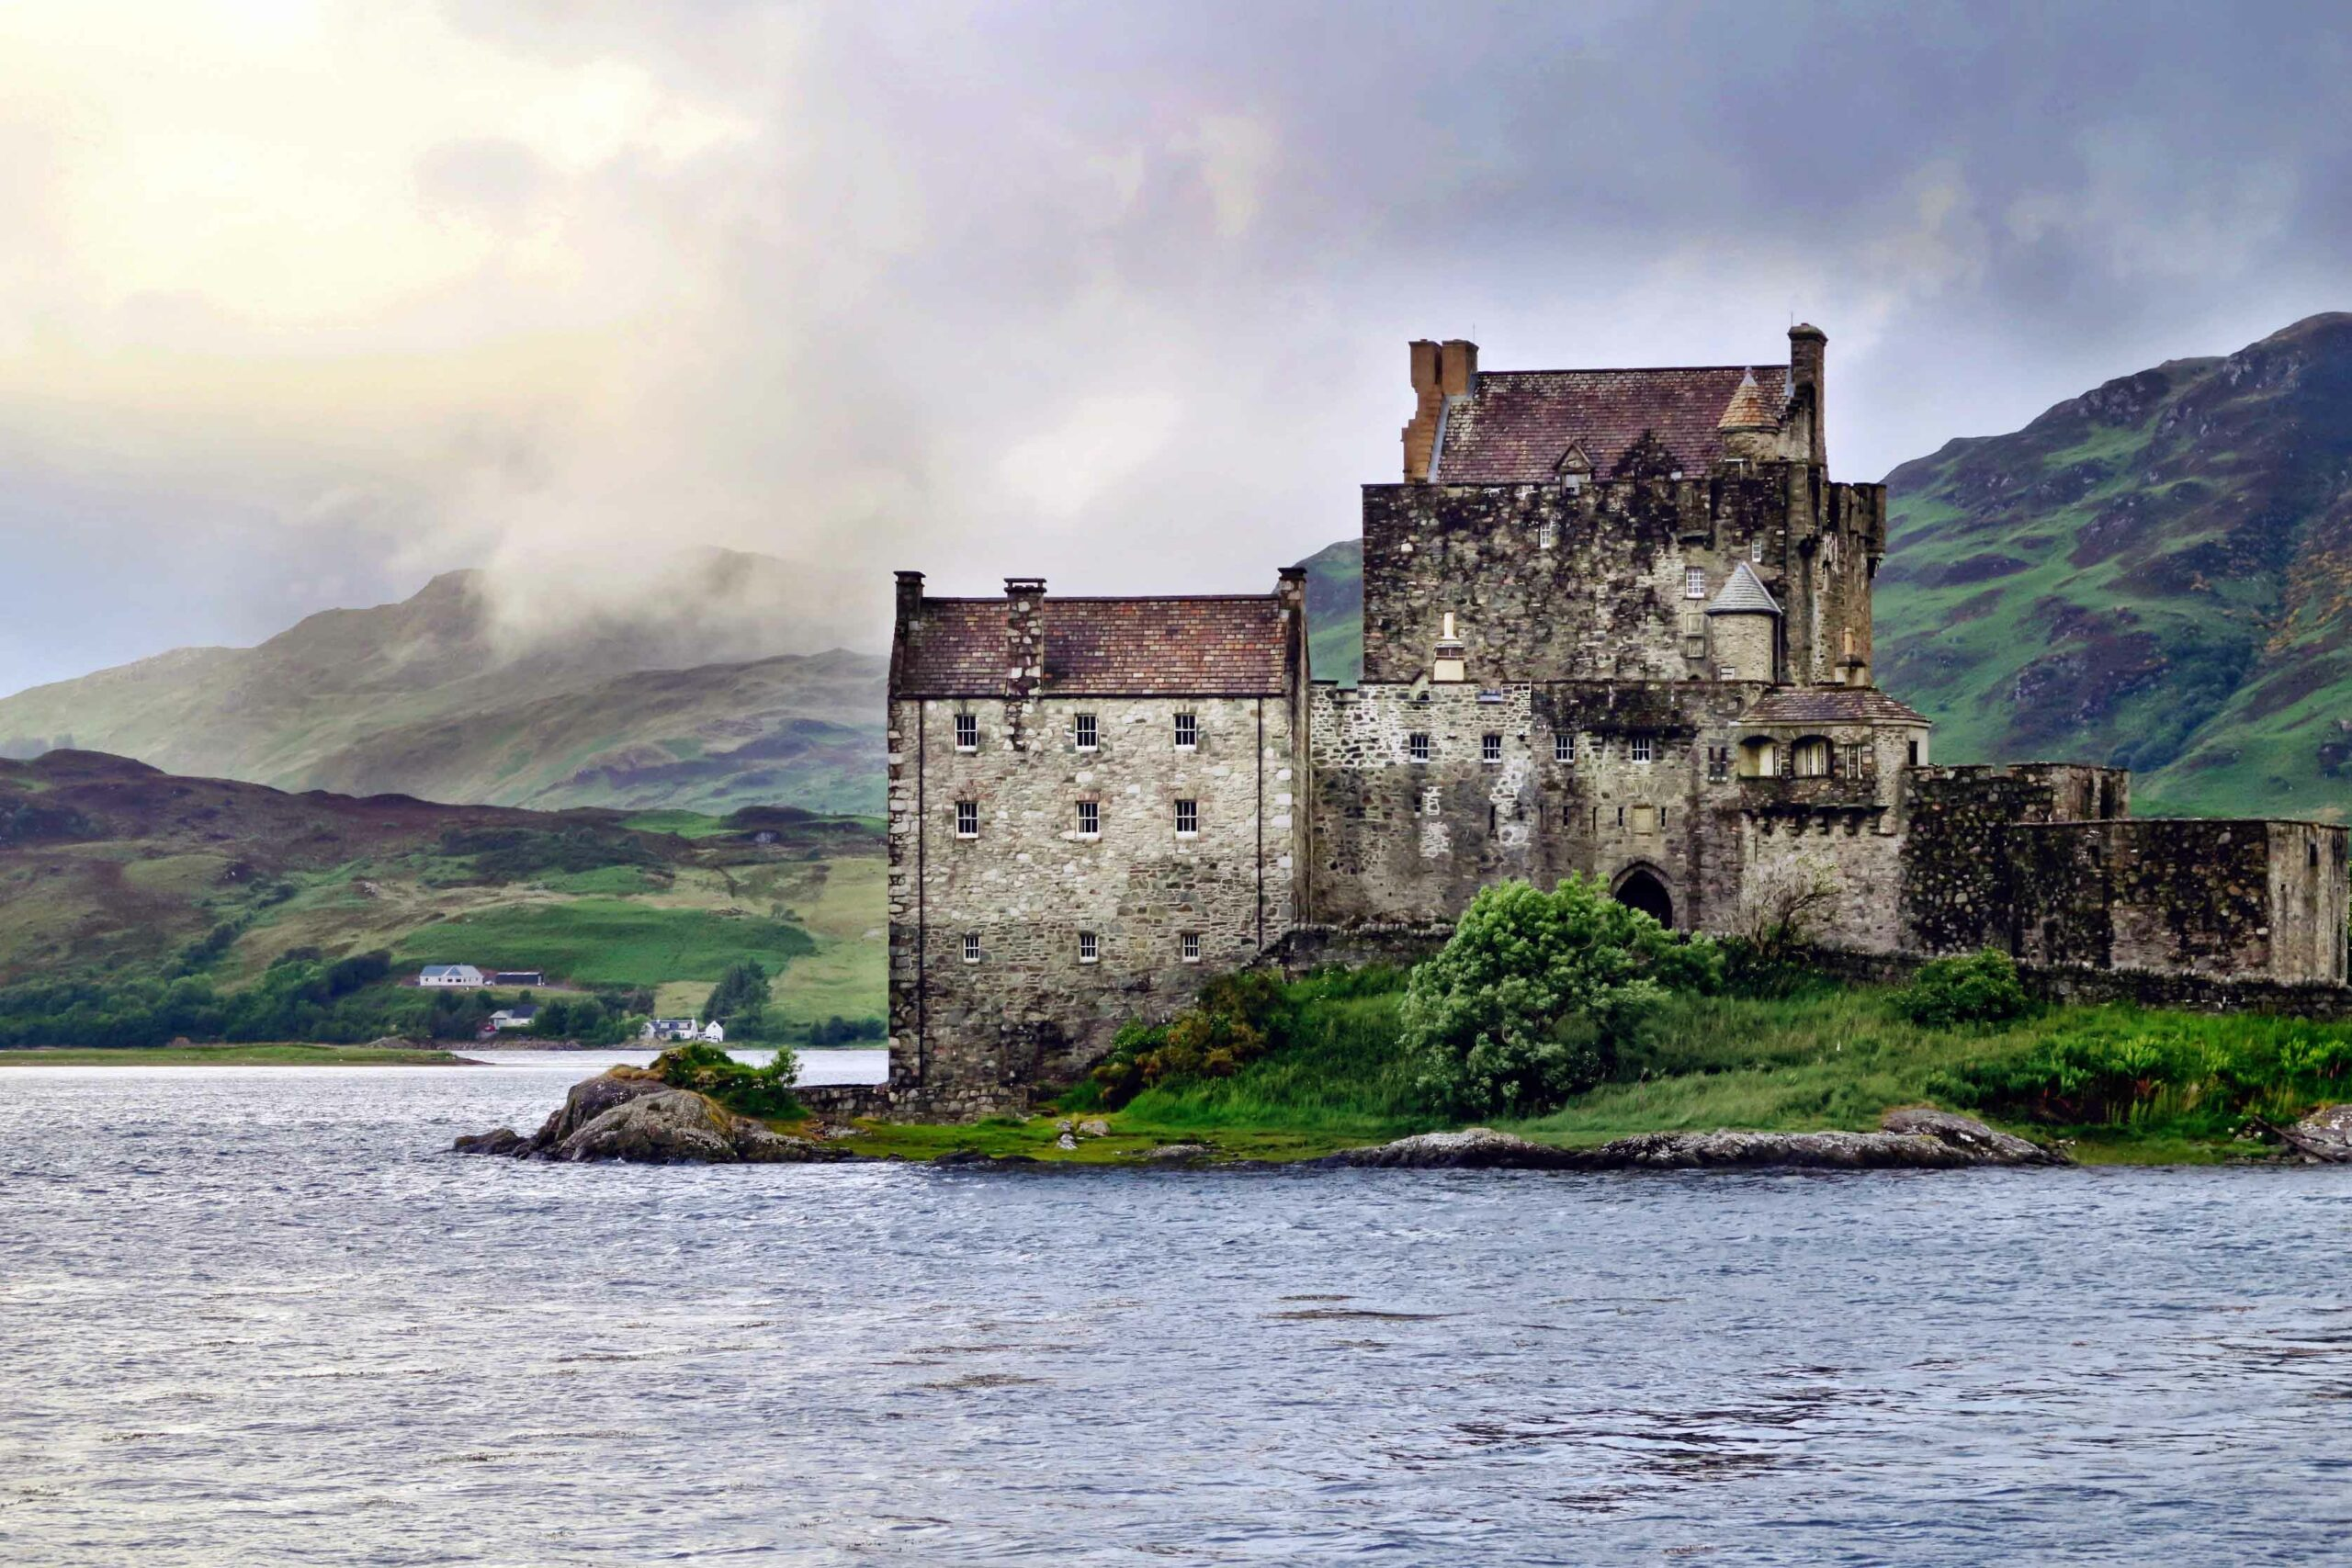 Eilean Donan Castle seen from our Scotland cruise experience